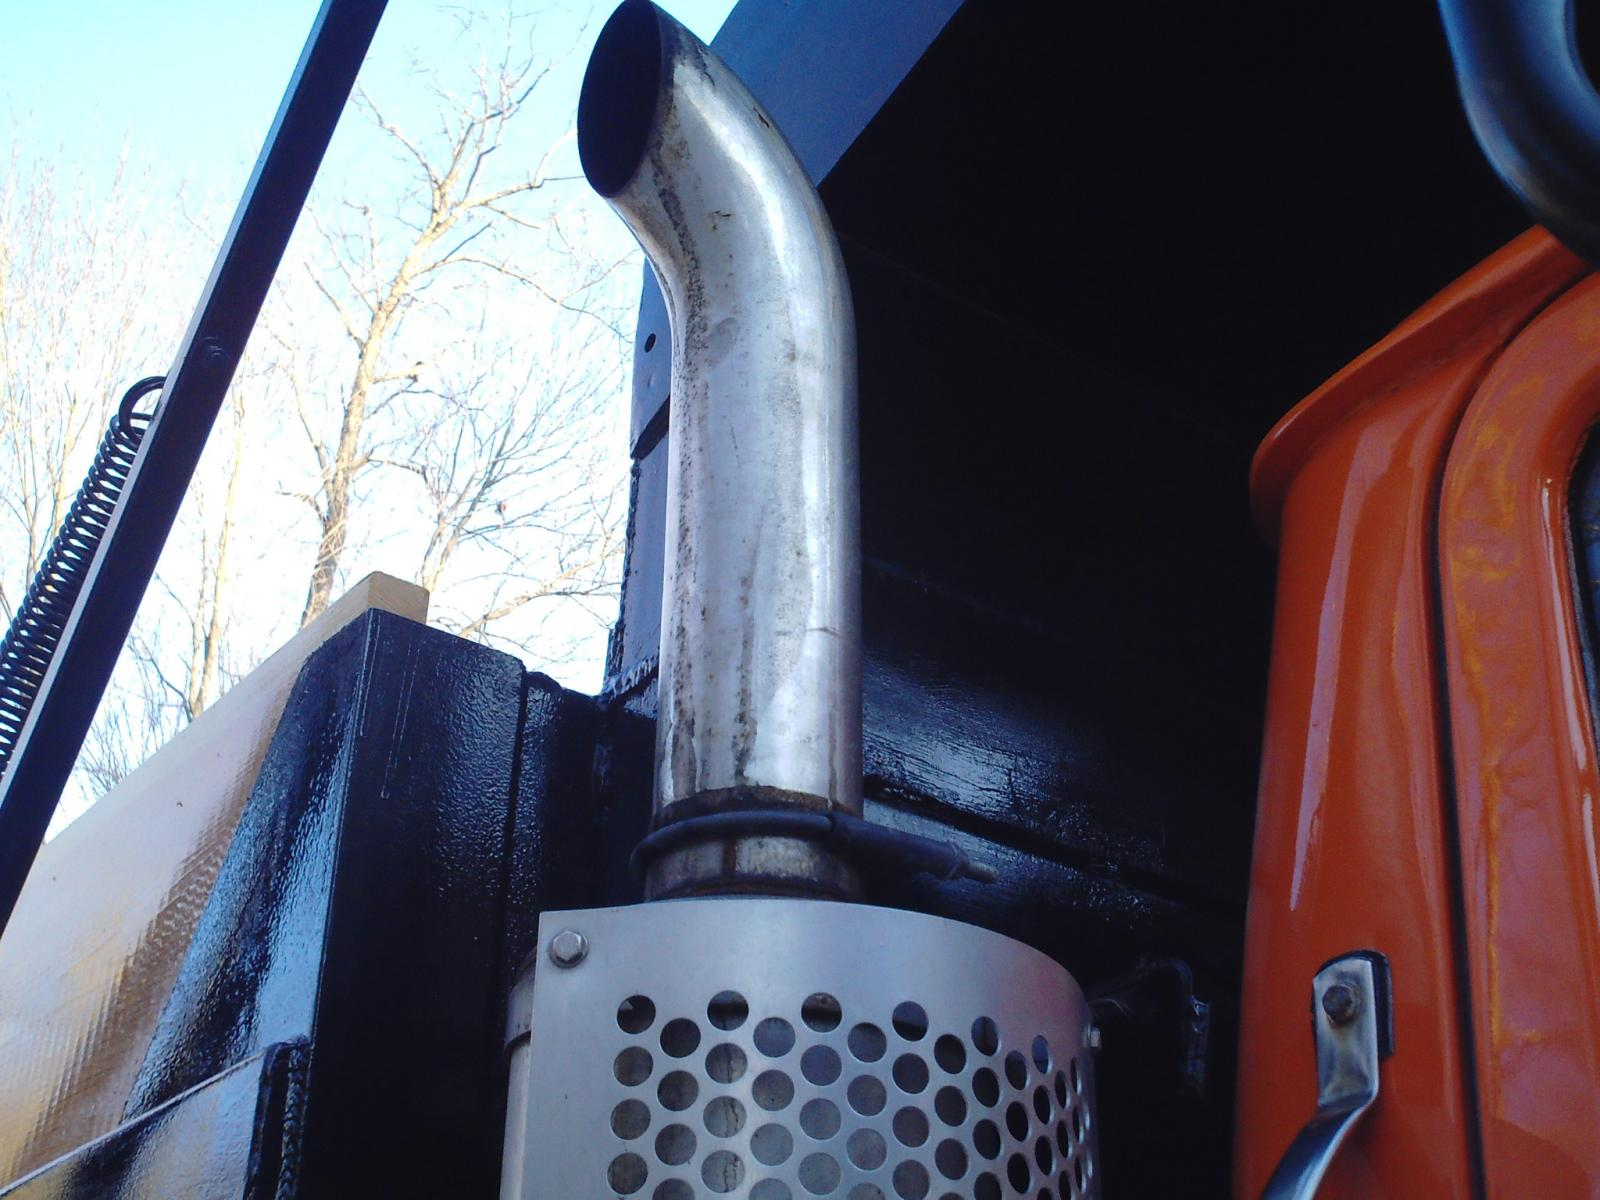 4 Quot Inch Short Chrome Curved Exhaust Stack For Dump Truck Exterior Cab Accessories And